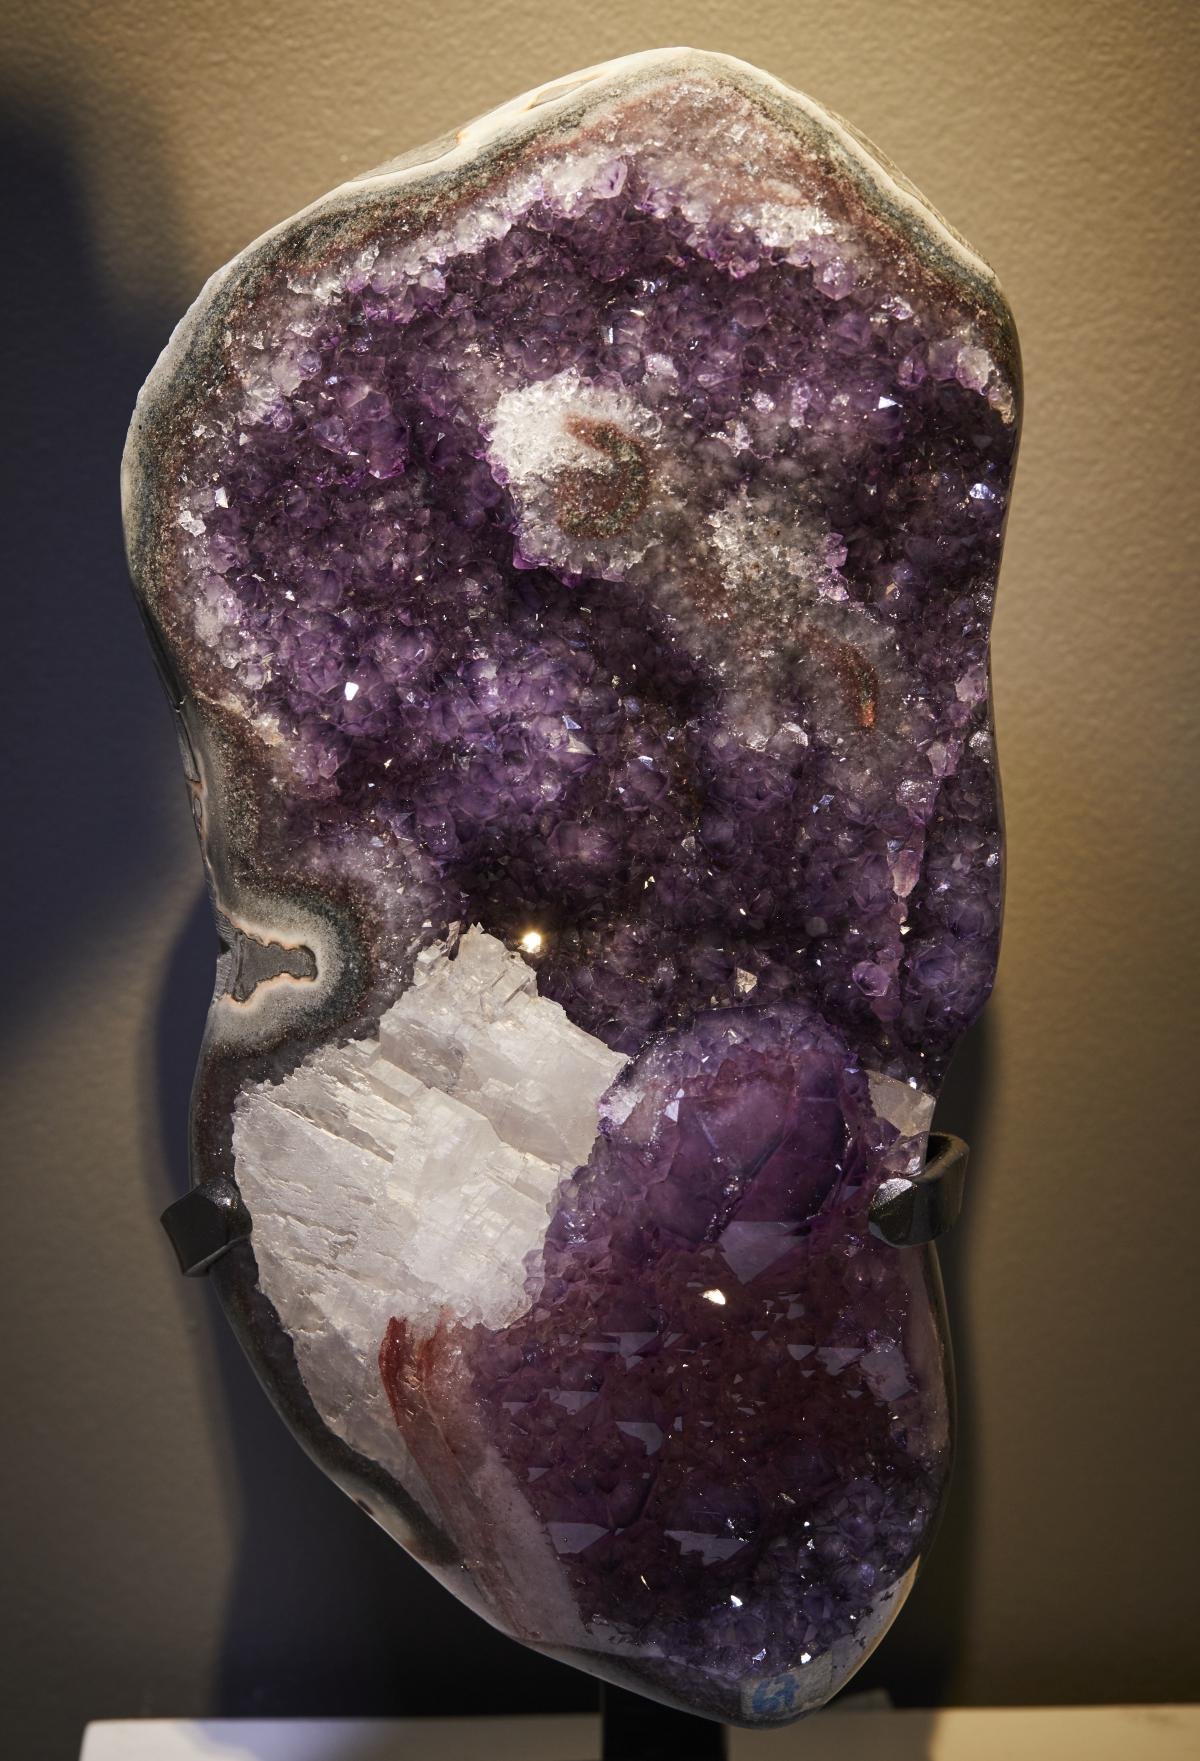 BEAUTIFUL AMETHYST CLUSTER WITH CALCITE FORMATION ON METAL